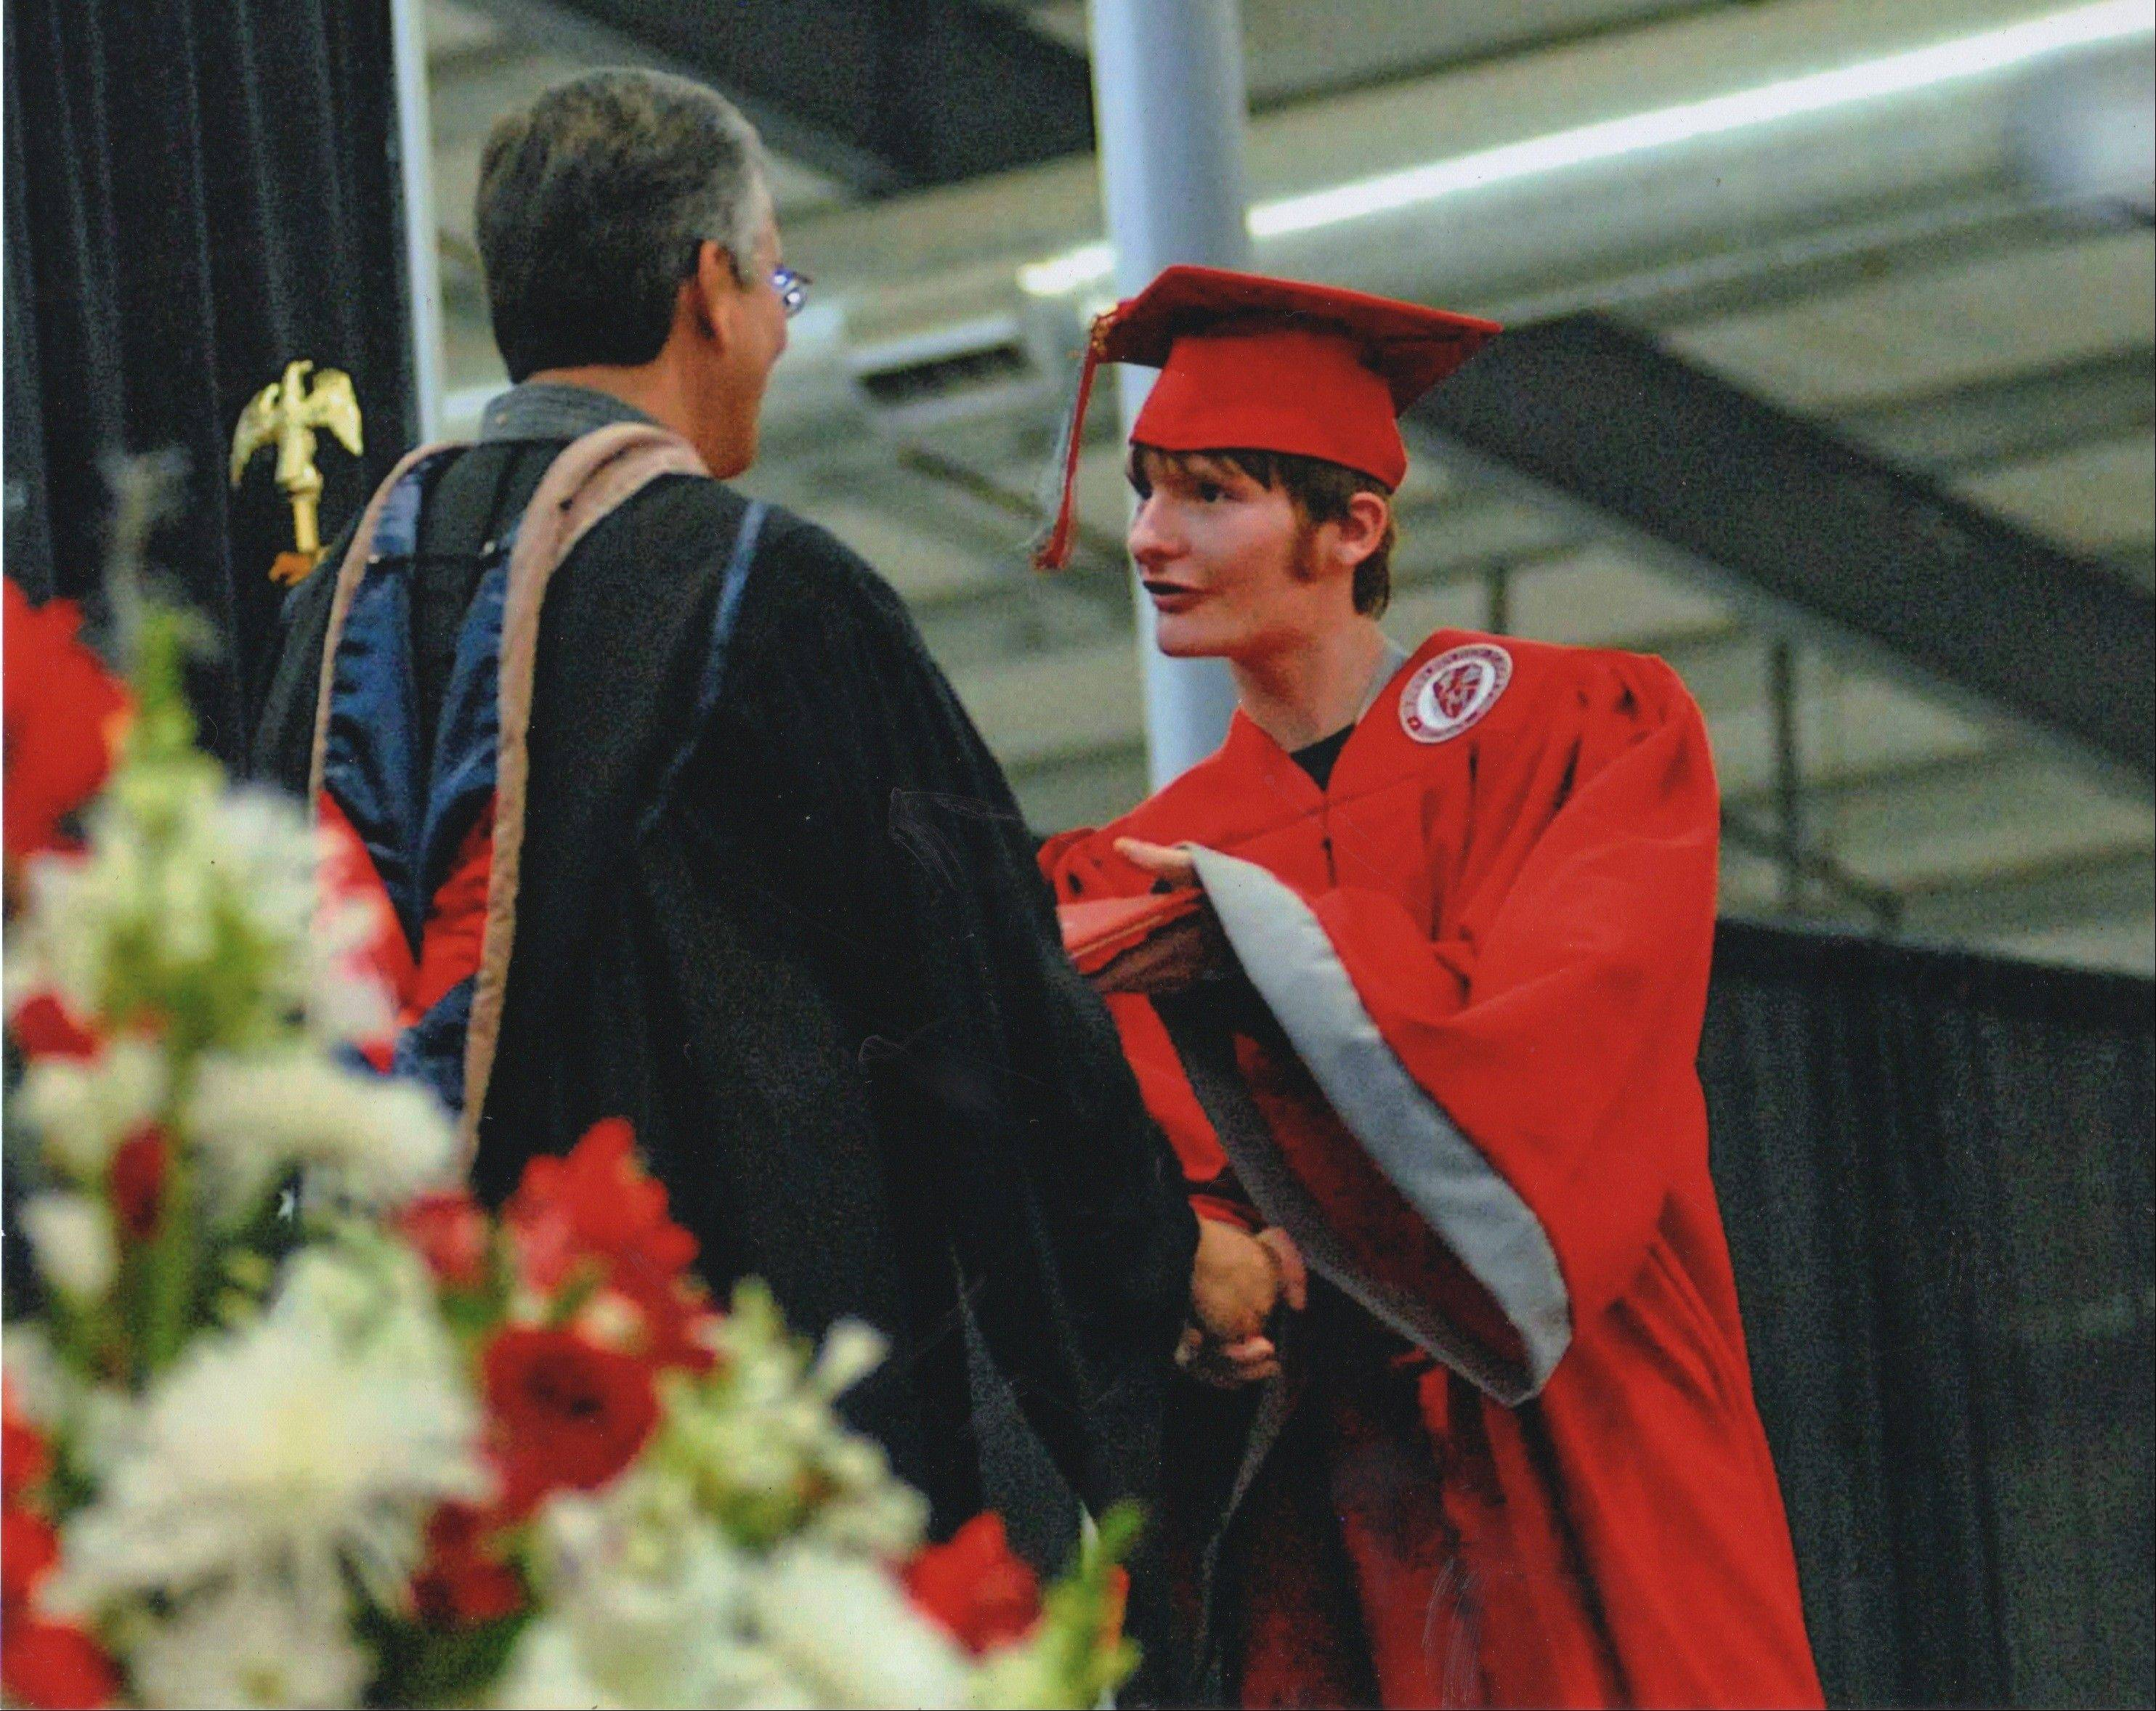 With the unending support of his parents and educators, Nick Salvi graduates from Mundelein High School with the class of 2010.